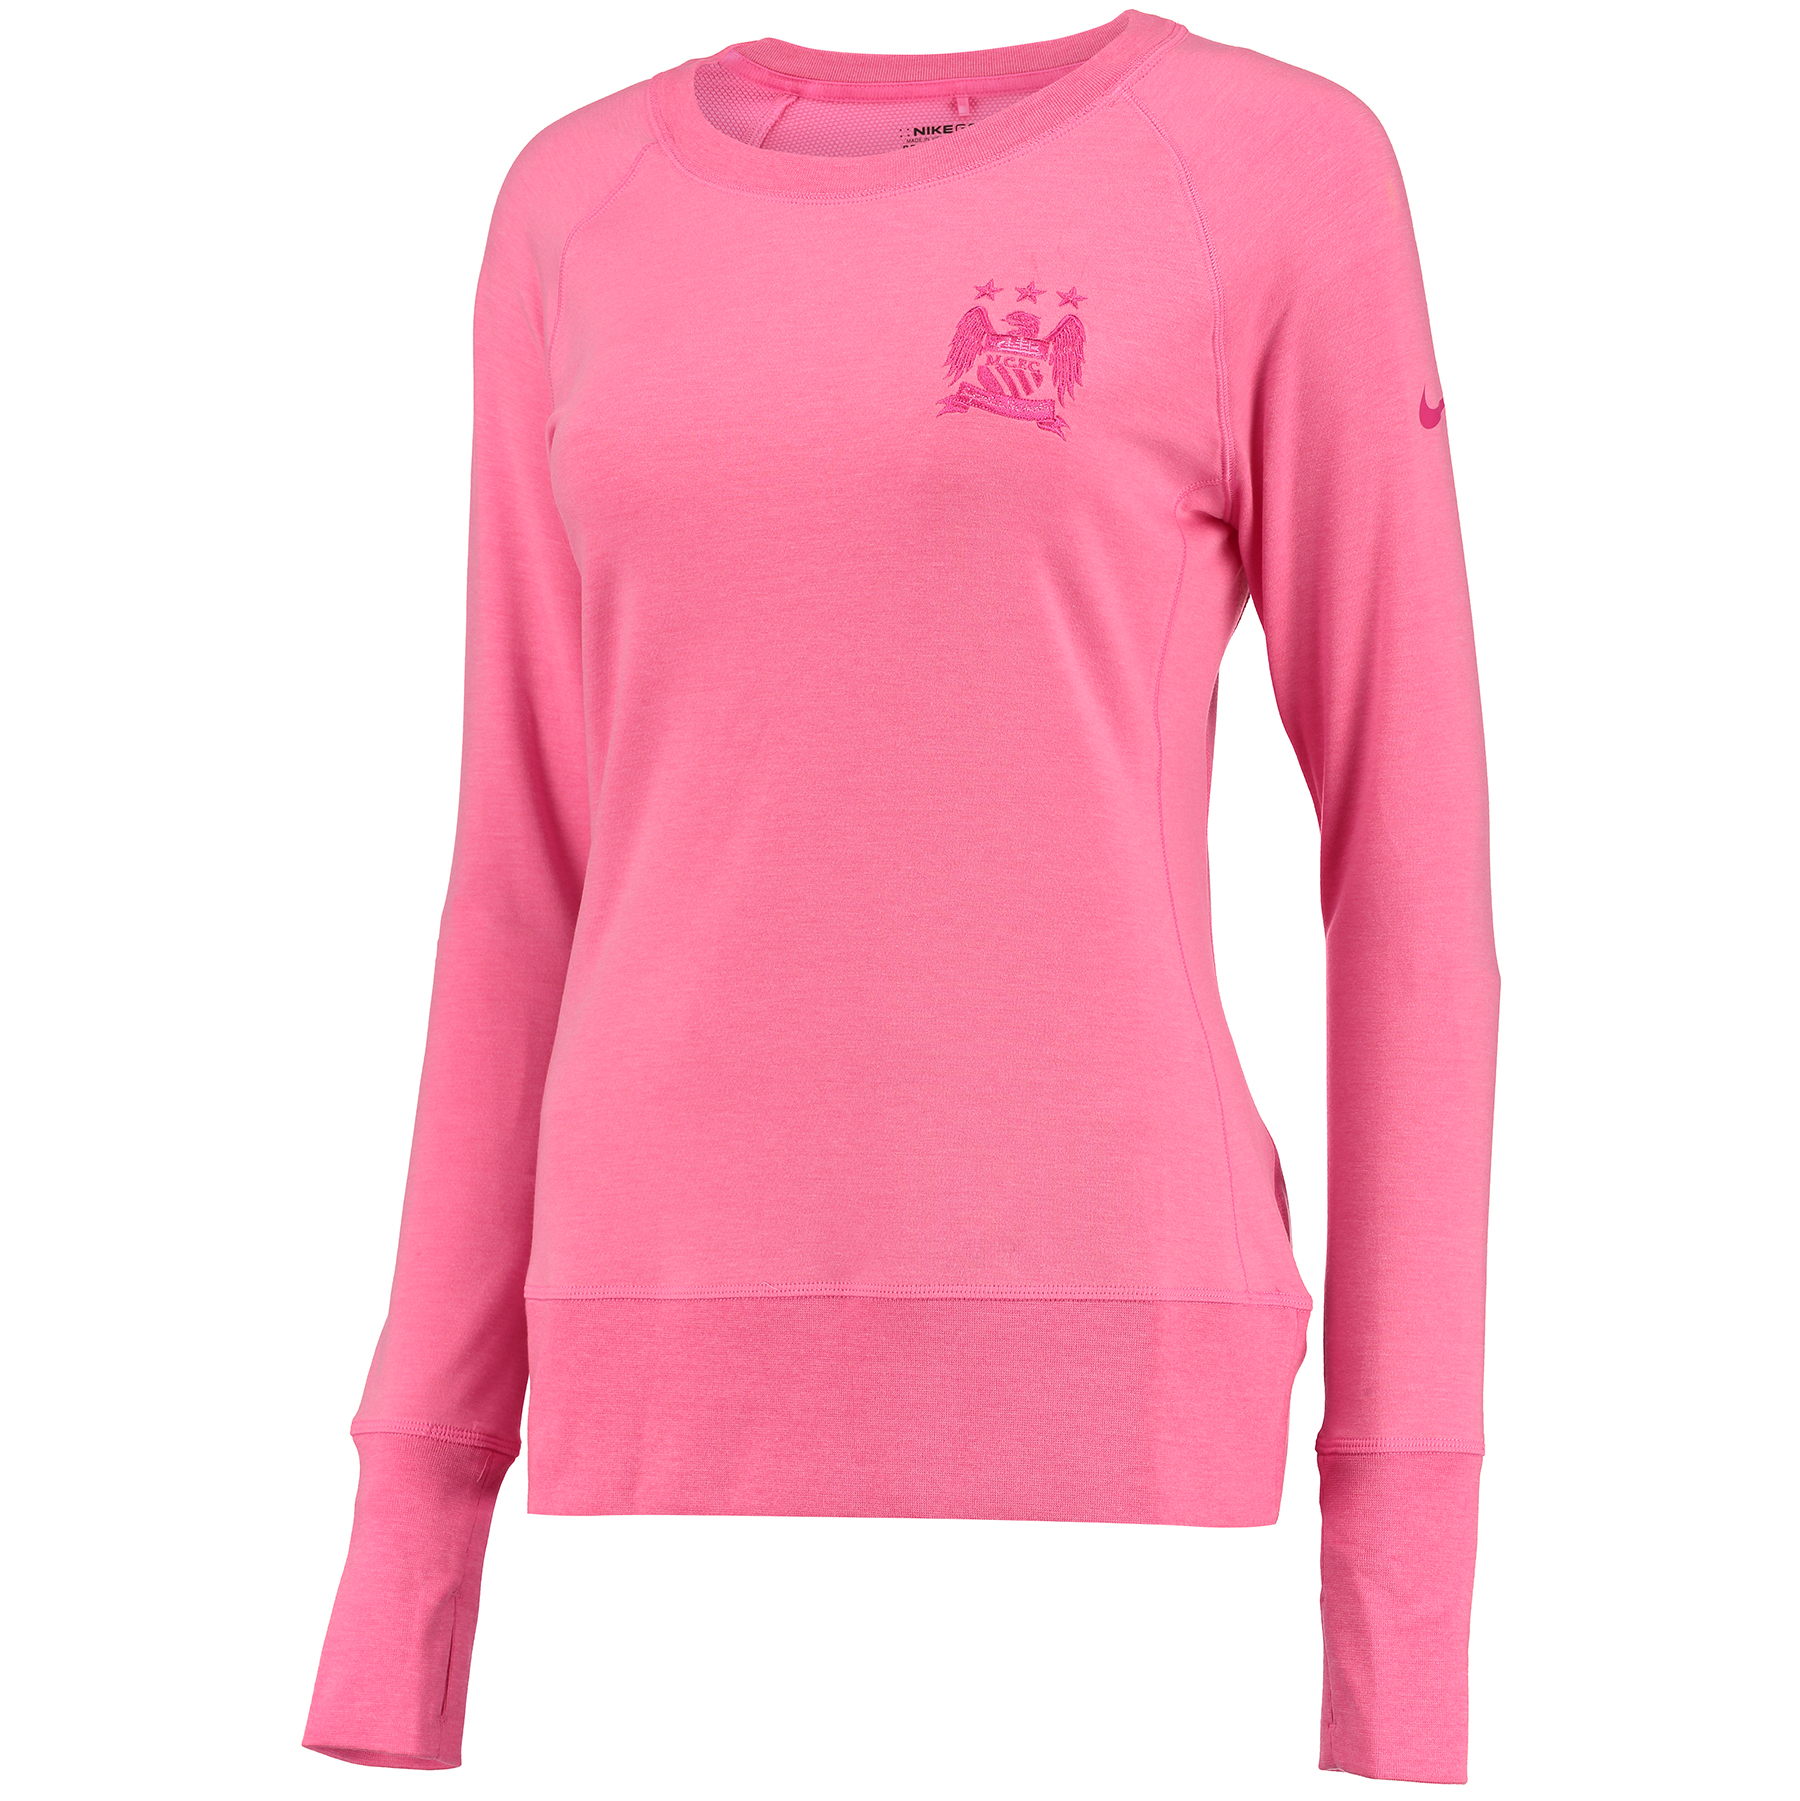 Manchester City Bunker Crew Neck Top - Womens Pink